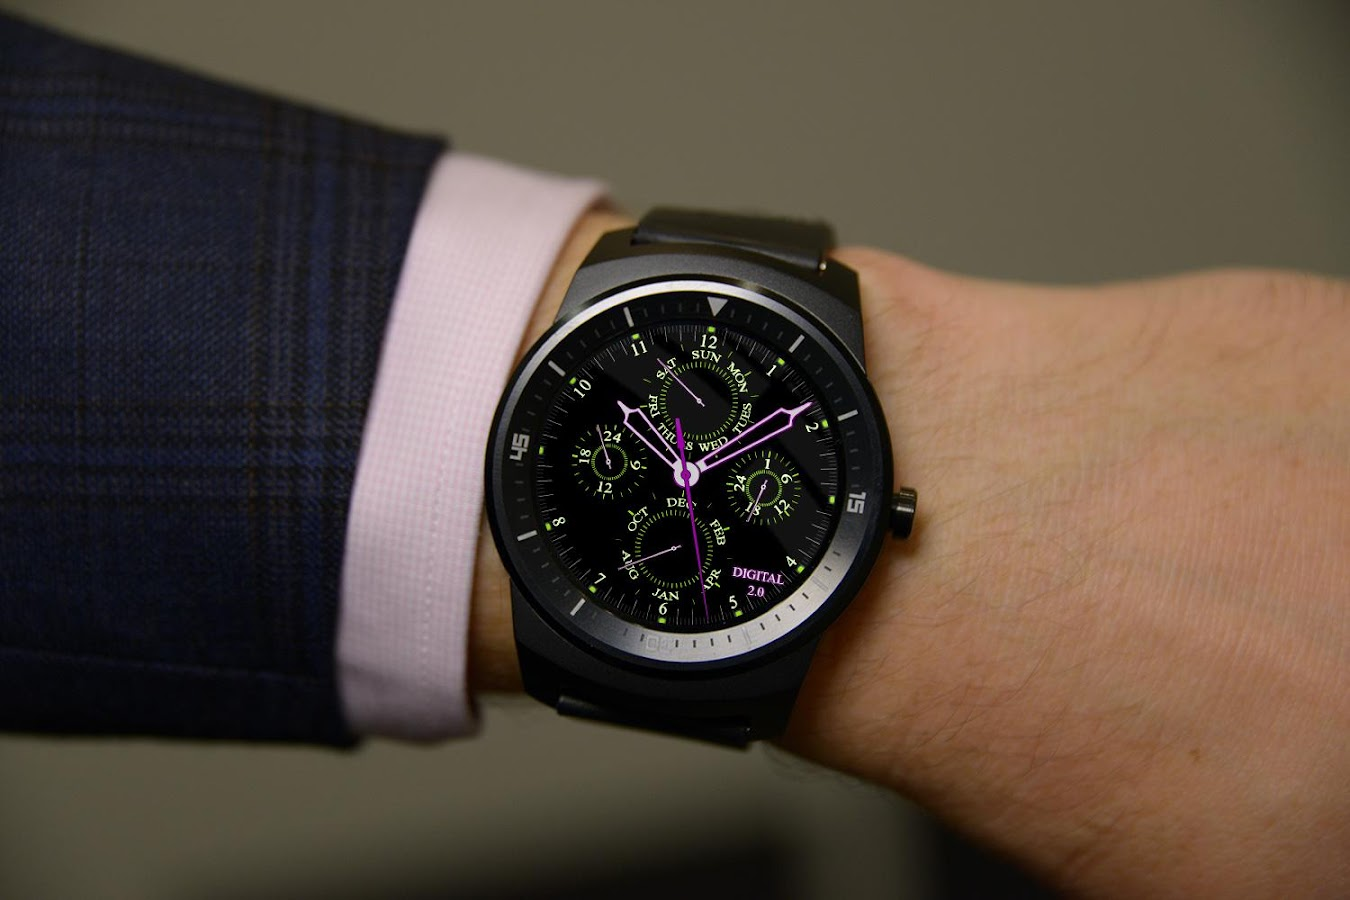 Watch Face D2 Android Wear